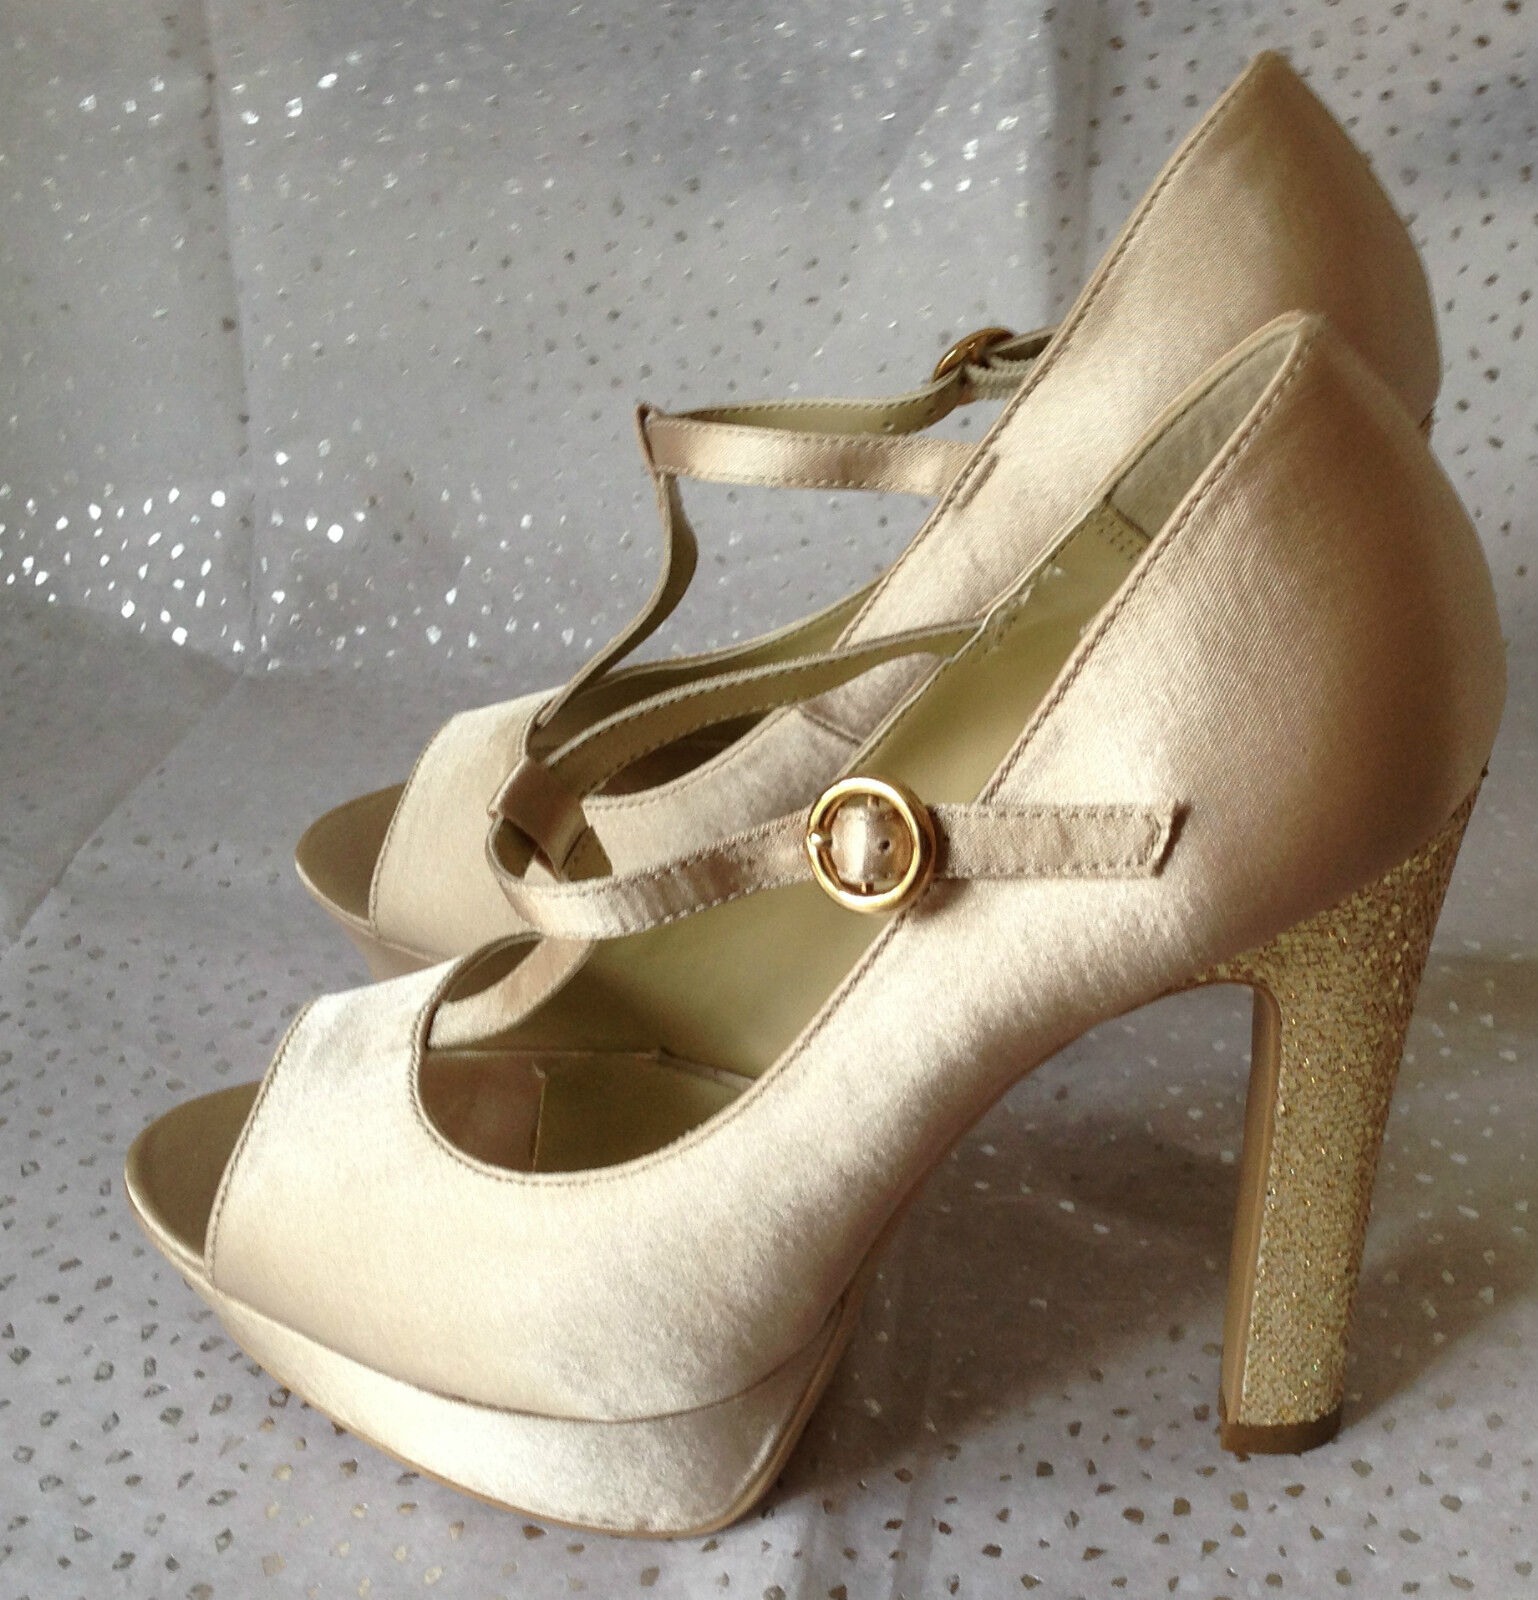 New Gold Look Ivory Satin With Gold New Glitter Heel Wedding Bridal Party Prom Shoes 3f136e